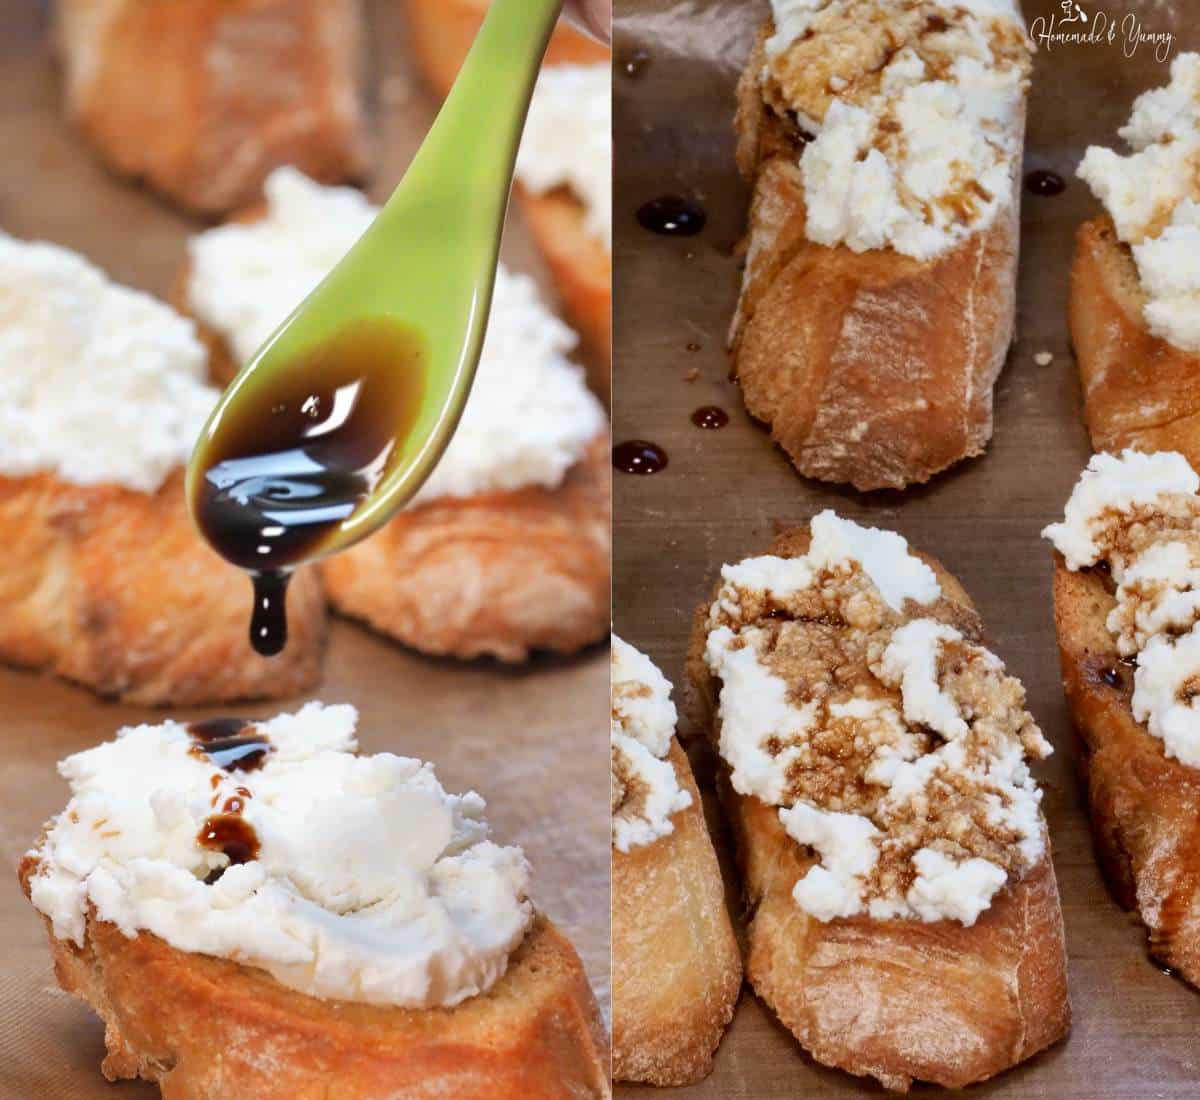 Topping bread appetizers with balsamic vinegar.